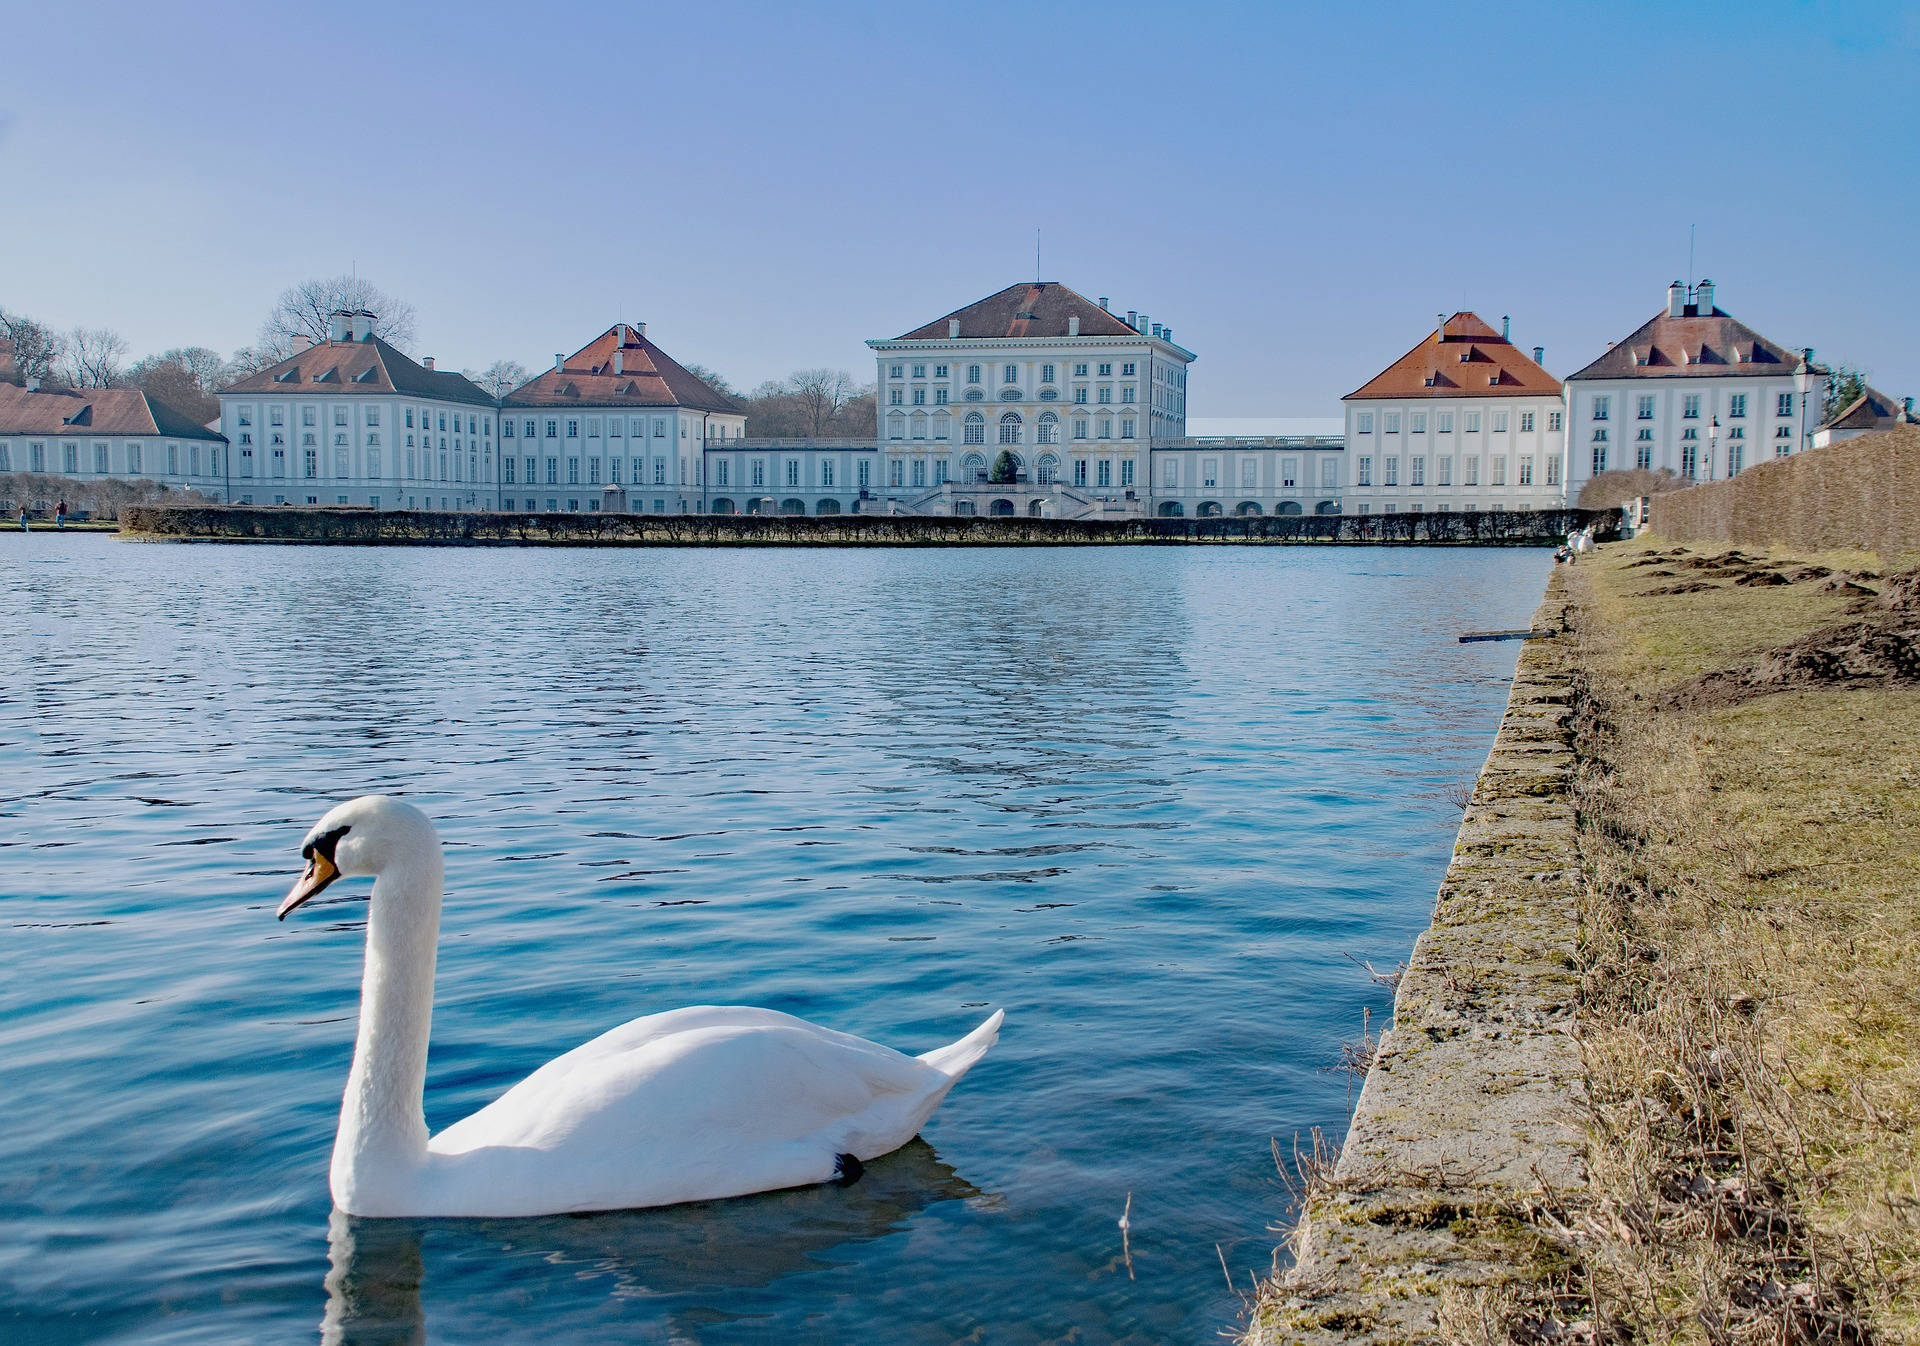 Baverian Highlights - Nymphenburg Palace, Munich, Germany